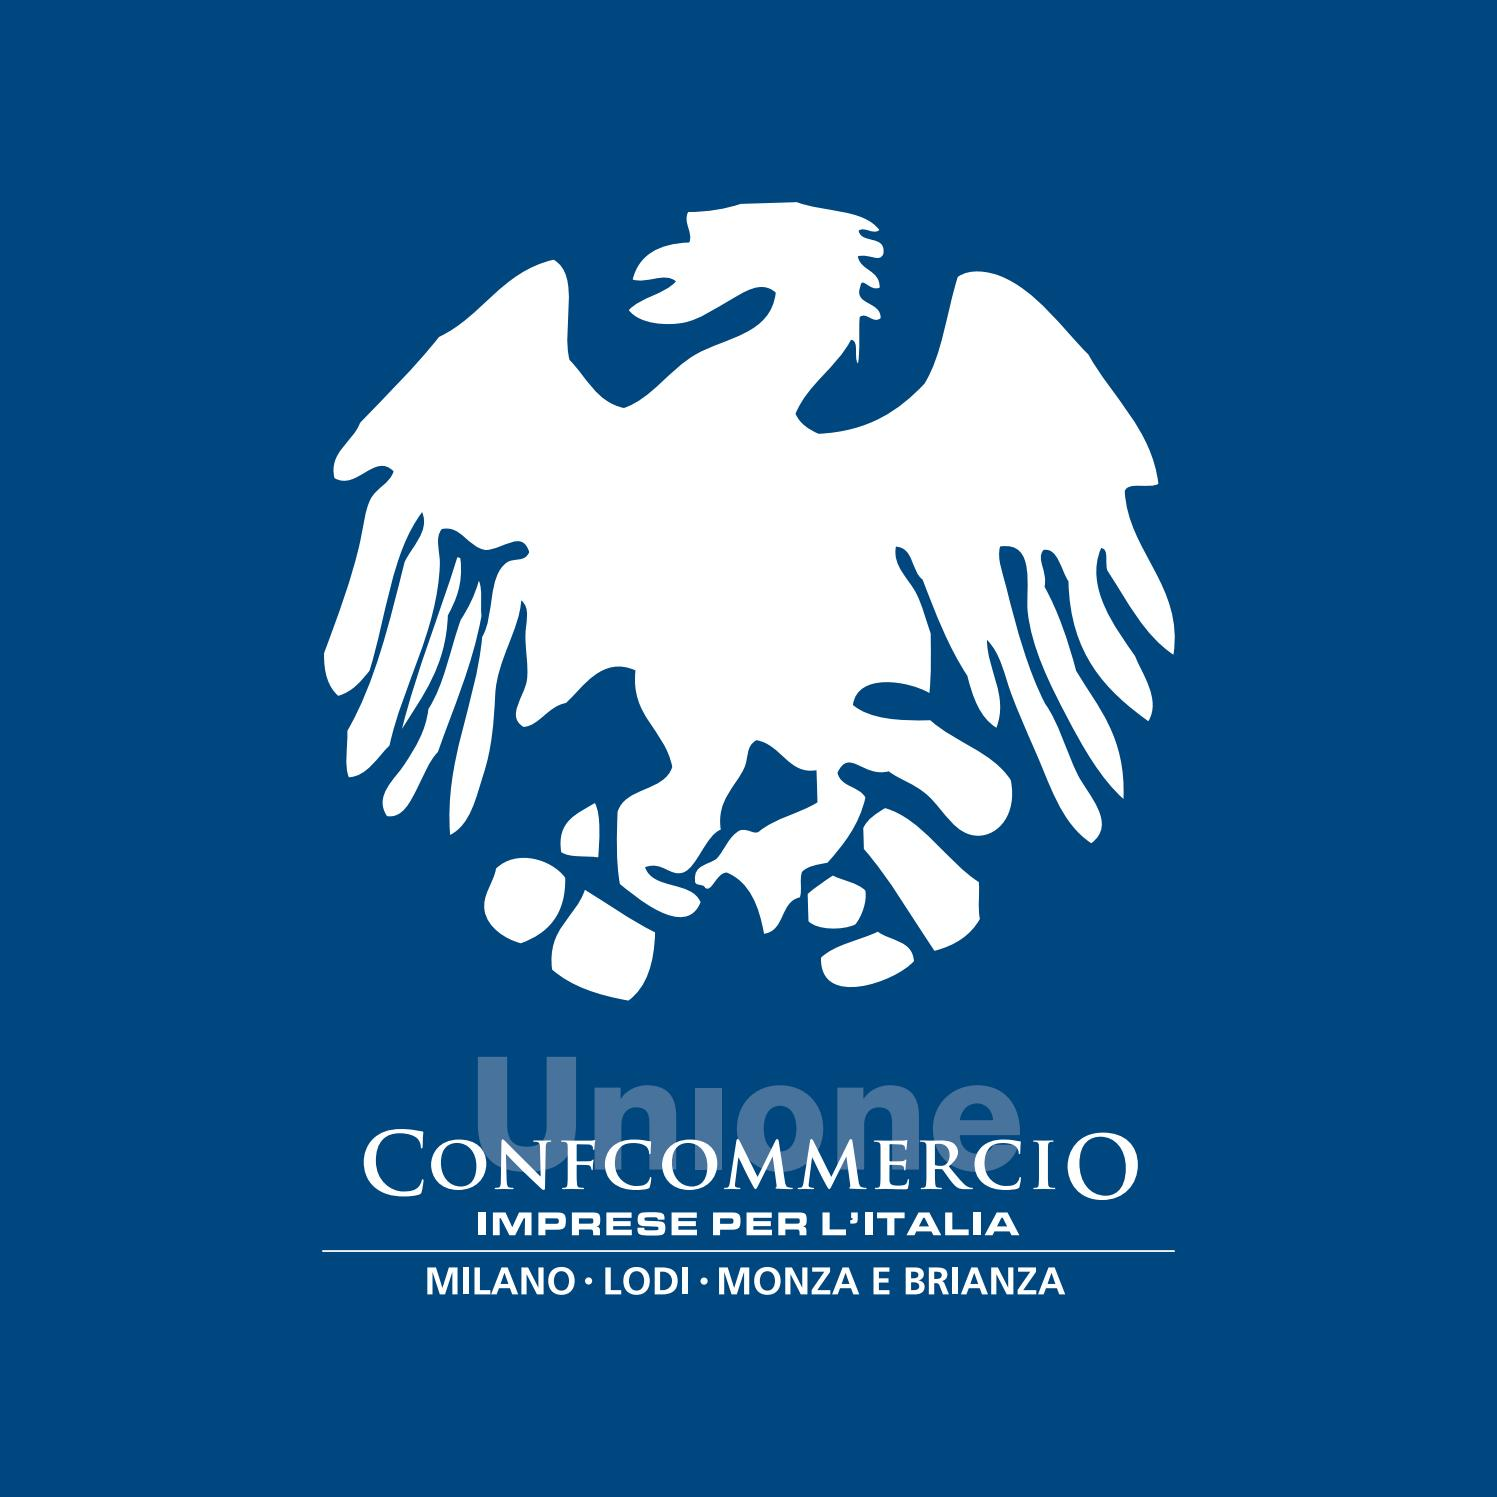 Unione Confcommercio | Association